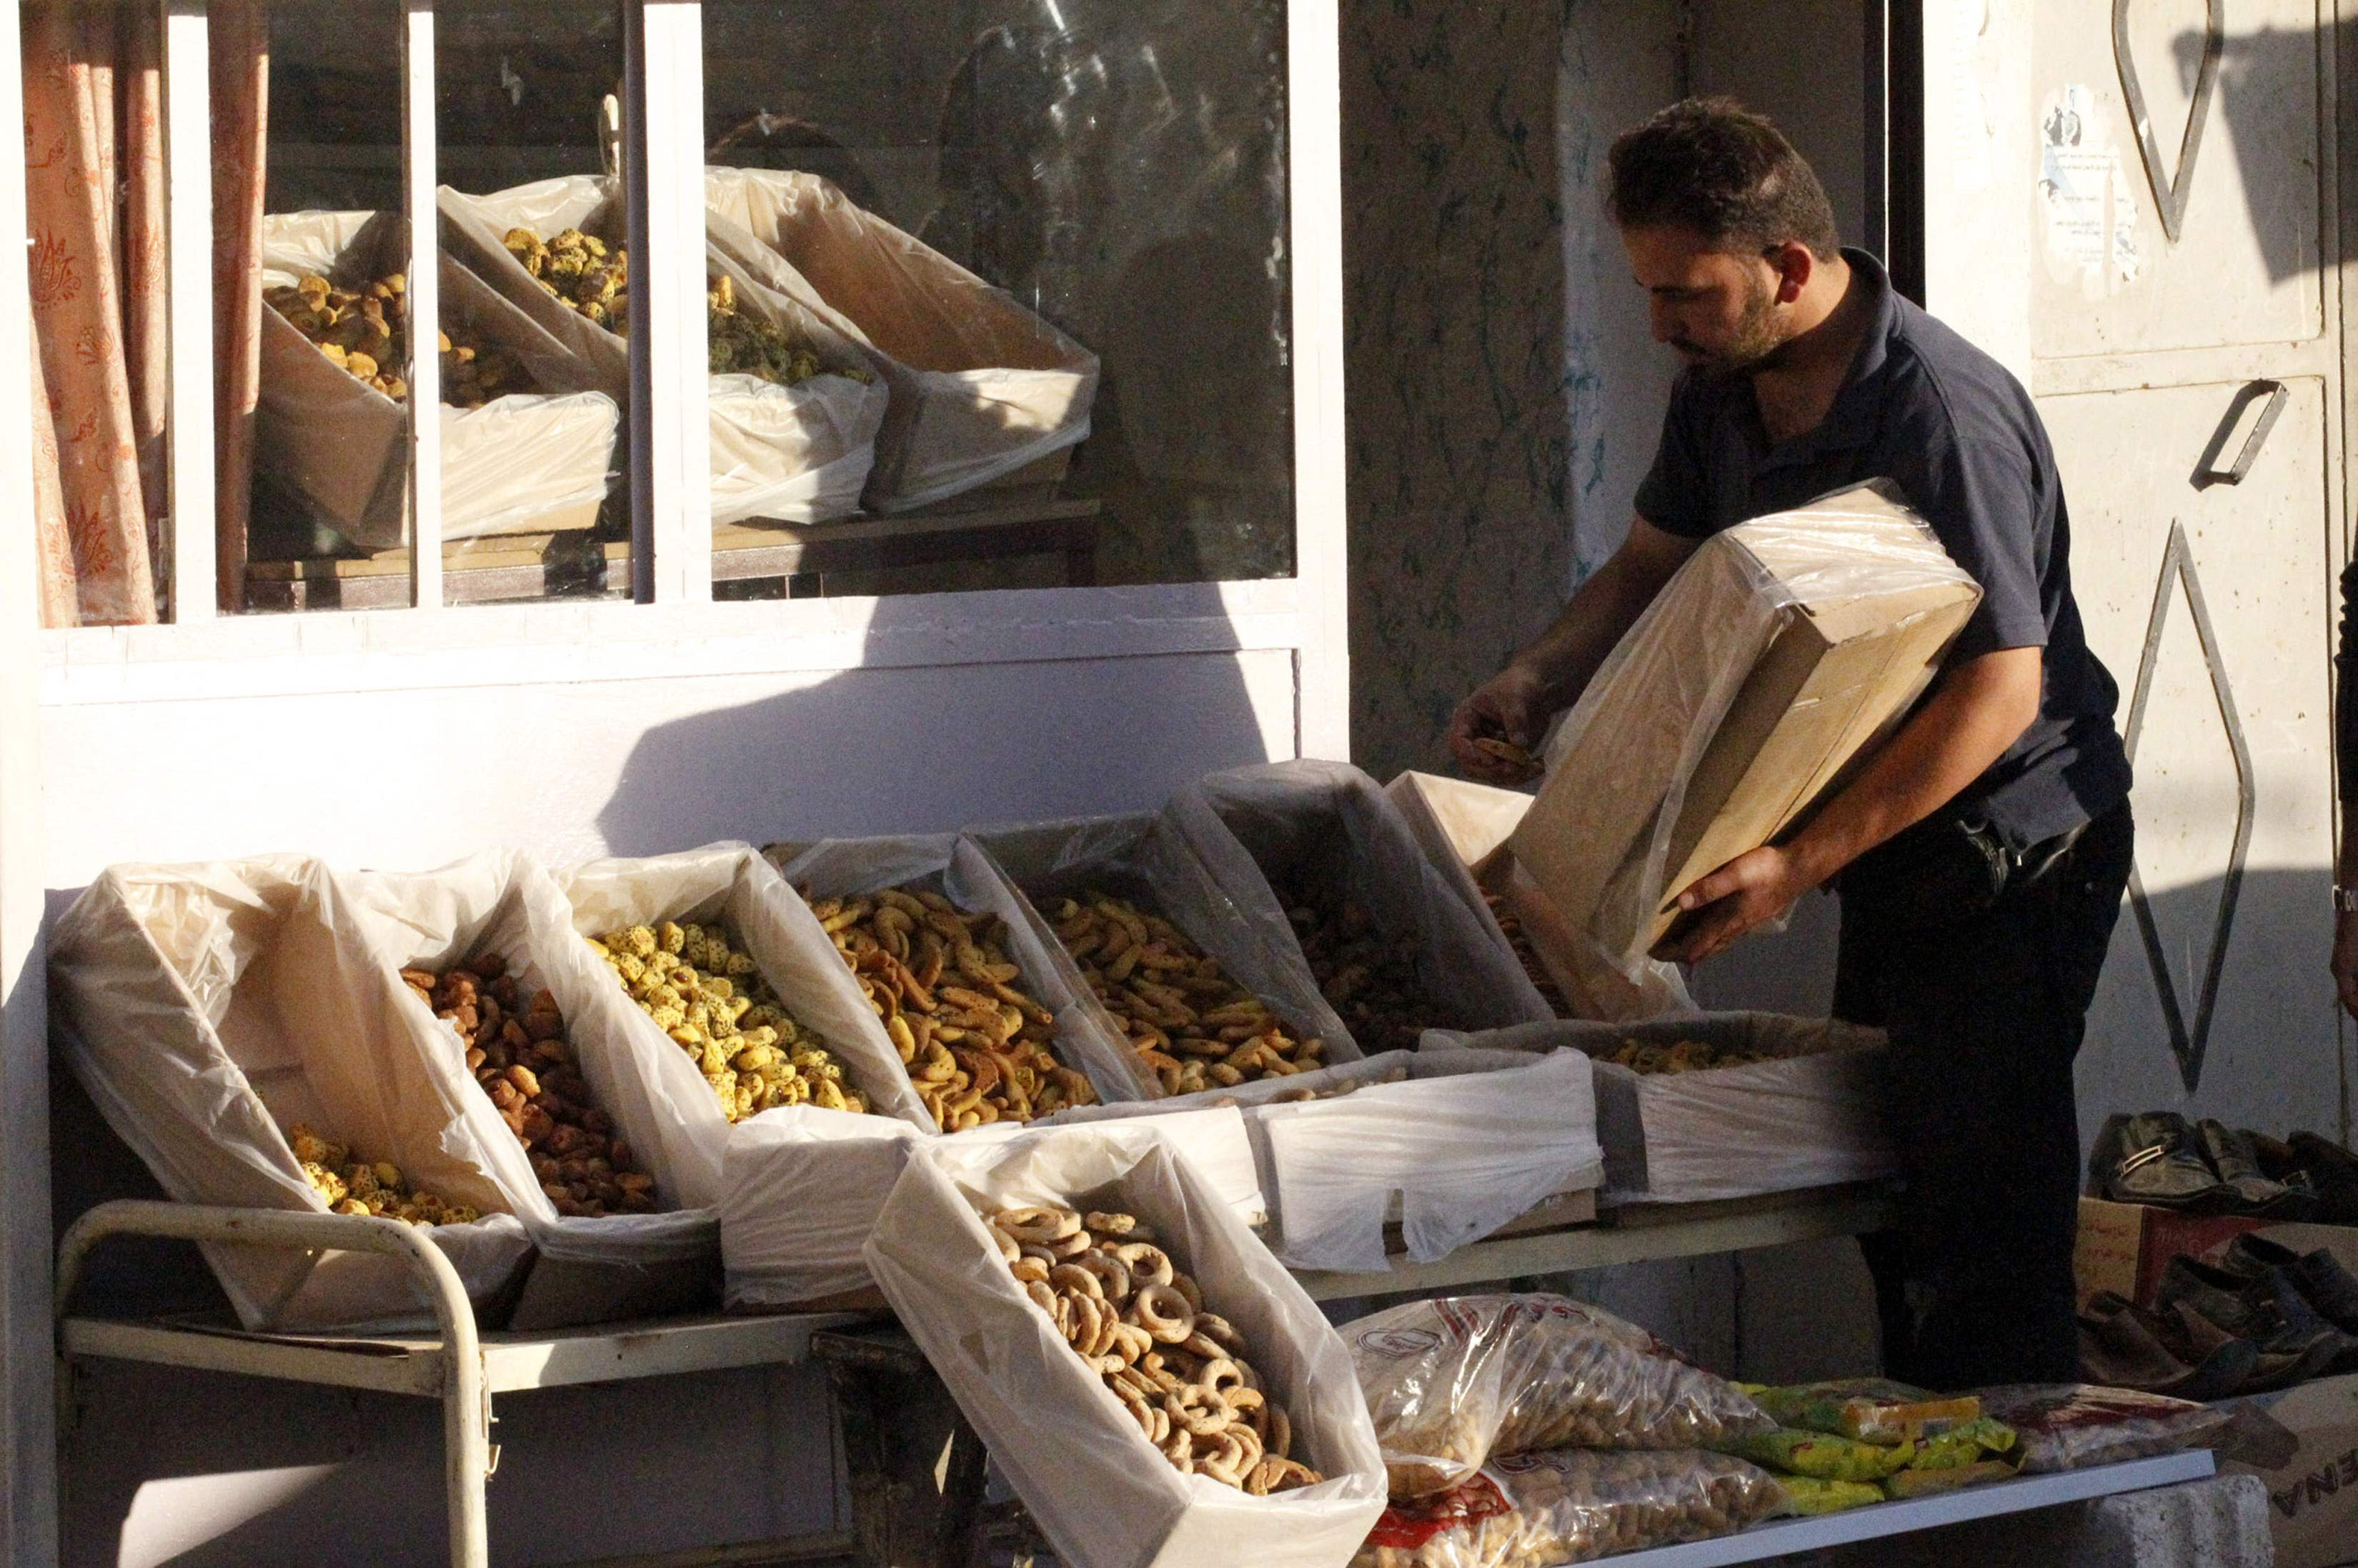 A man arranges sweets into boxes in a market ahead of the upcoming Muslim Eid al-Adha holiday in Manbej, in Aleppo countryside October 12, 2013. Picture taken October 12, 2013. REUTERS/Nour Fourat (SYRIA - Tags: RELIGION FOOD)